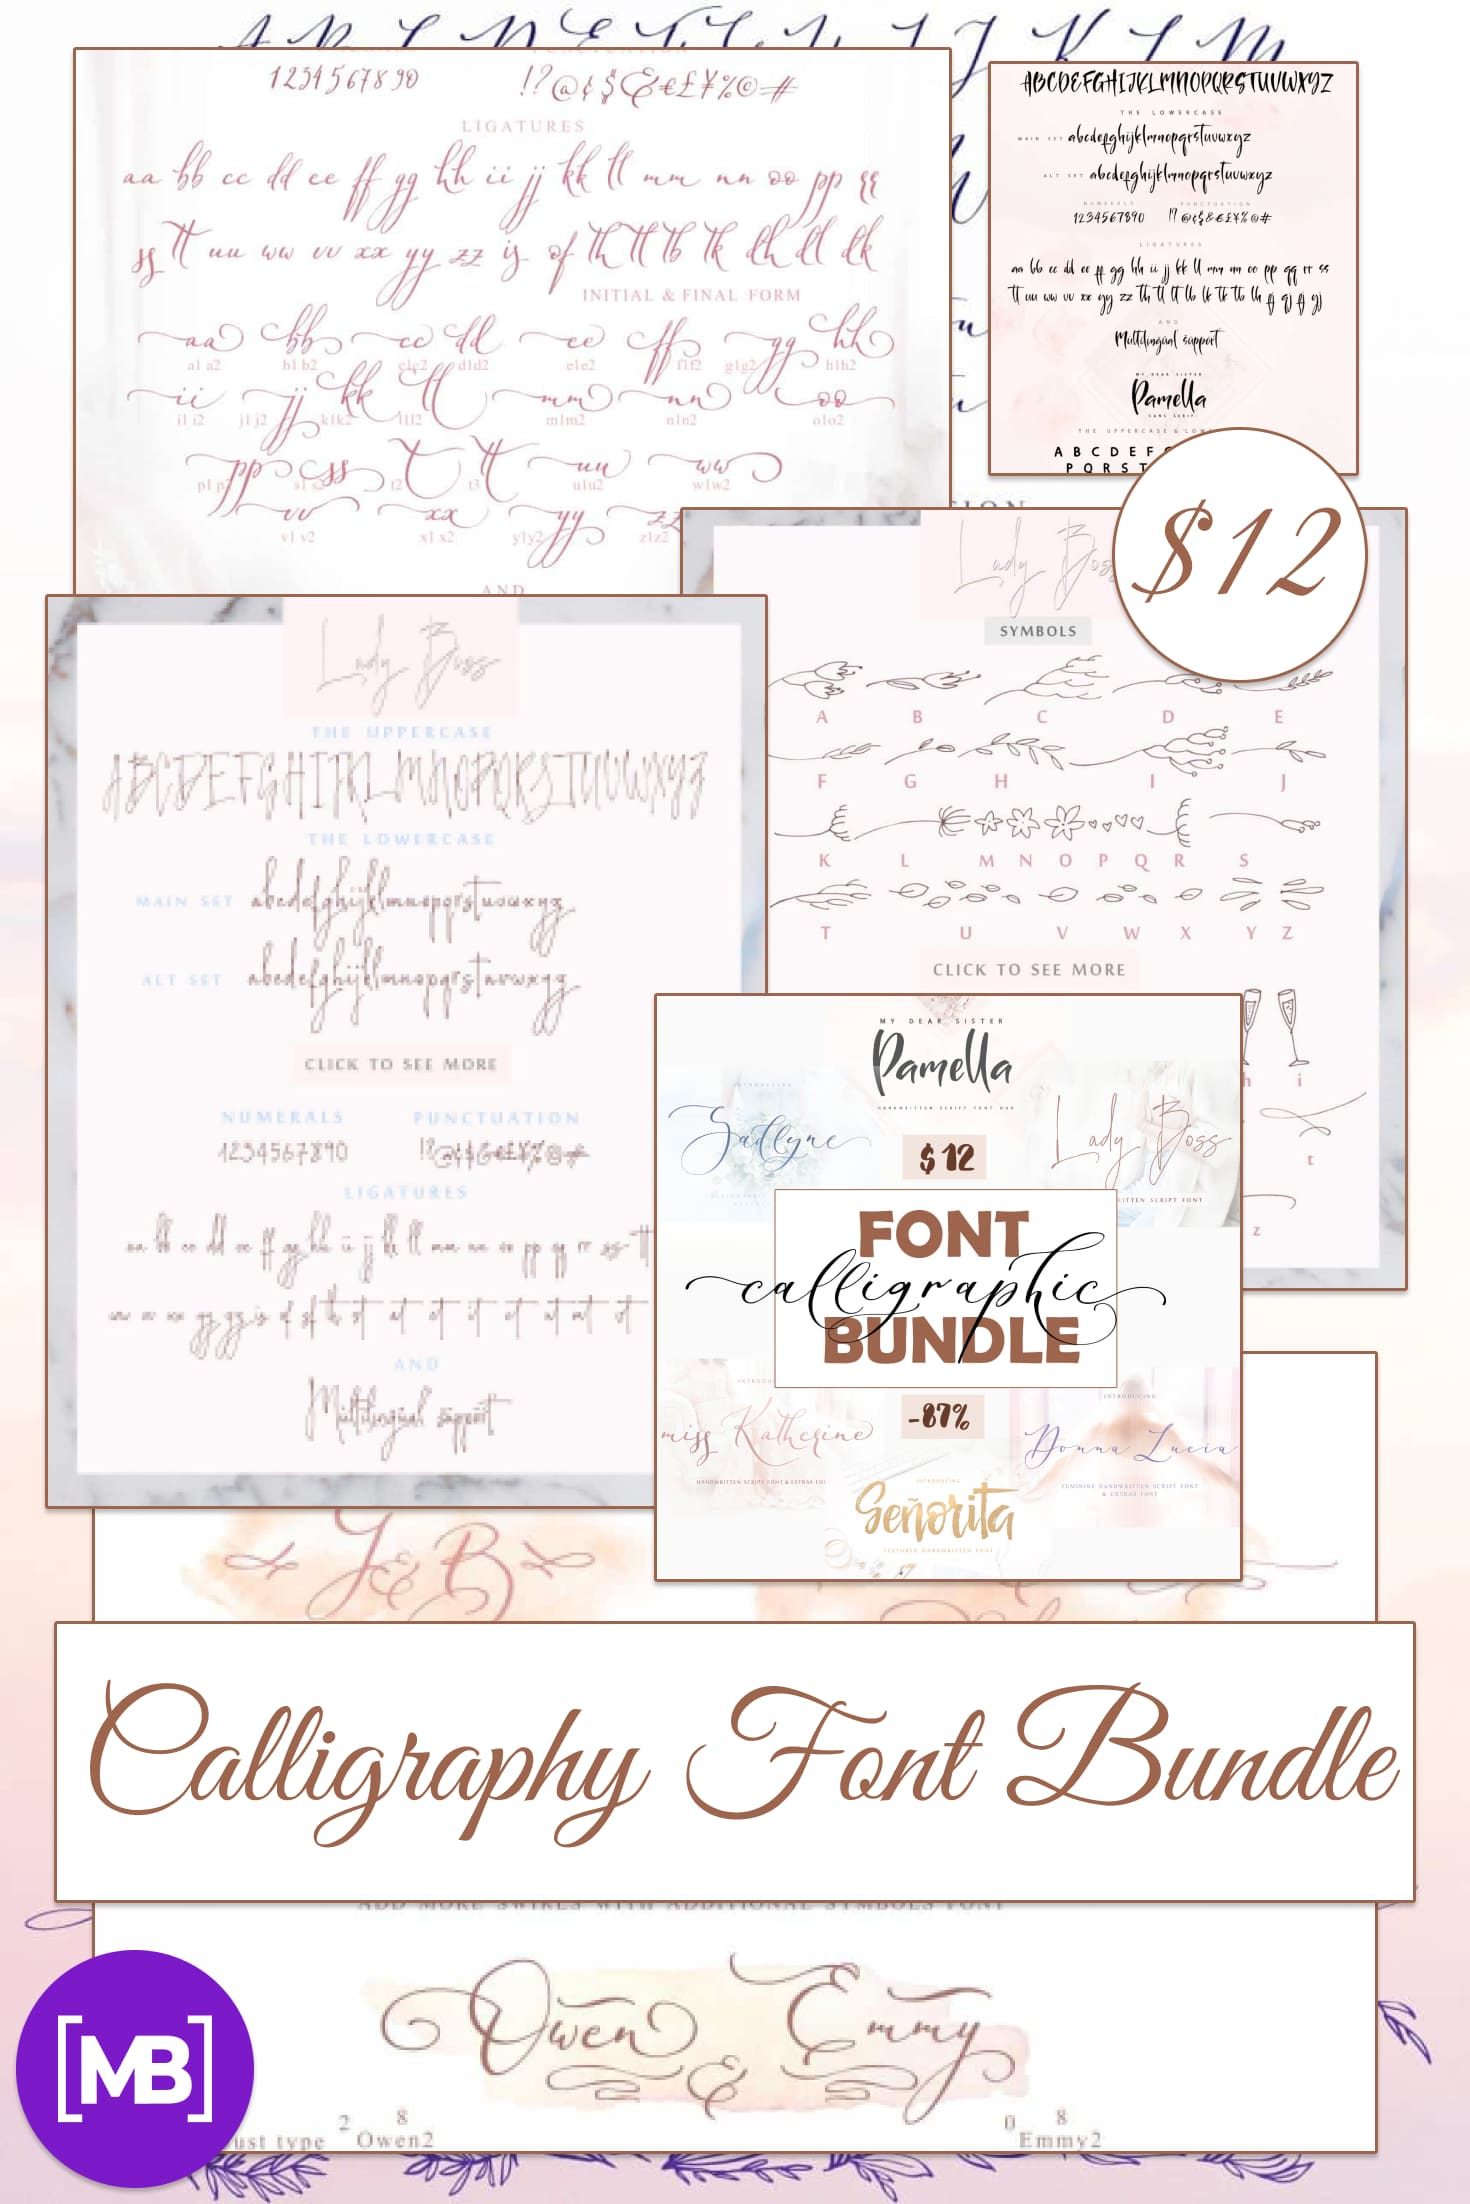 Pinterest Image: Calligraphy Font Bundle - $12 ONLY.